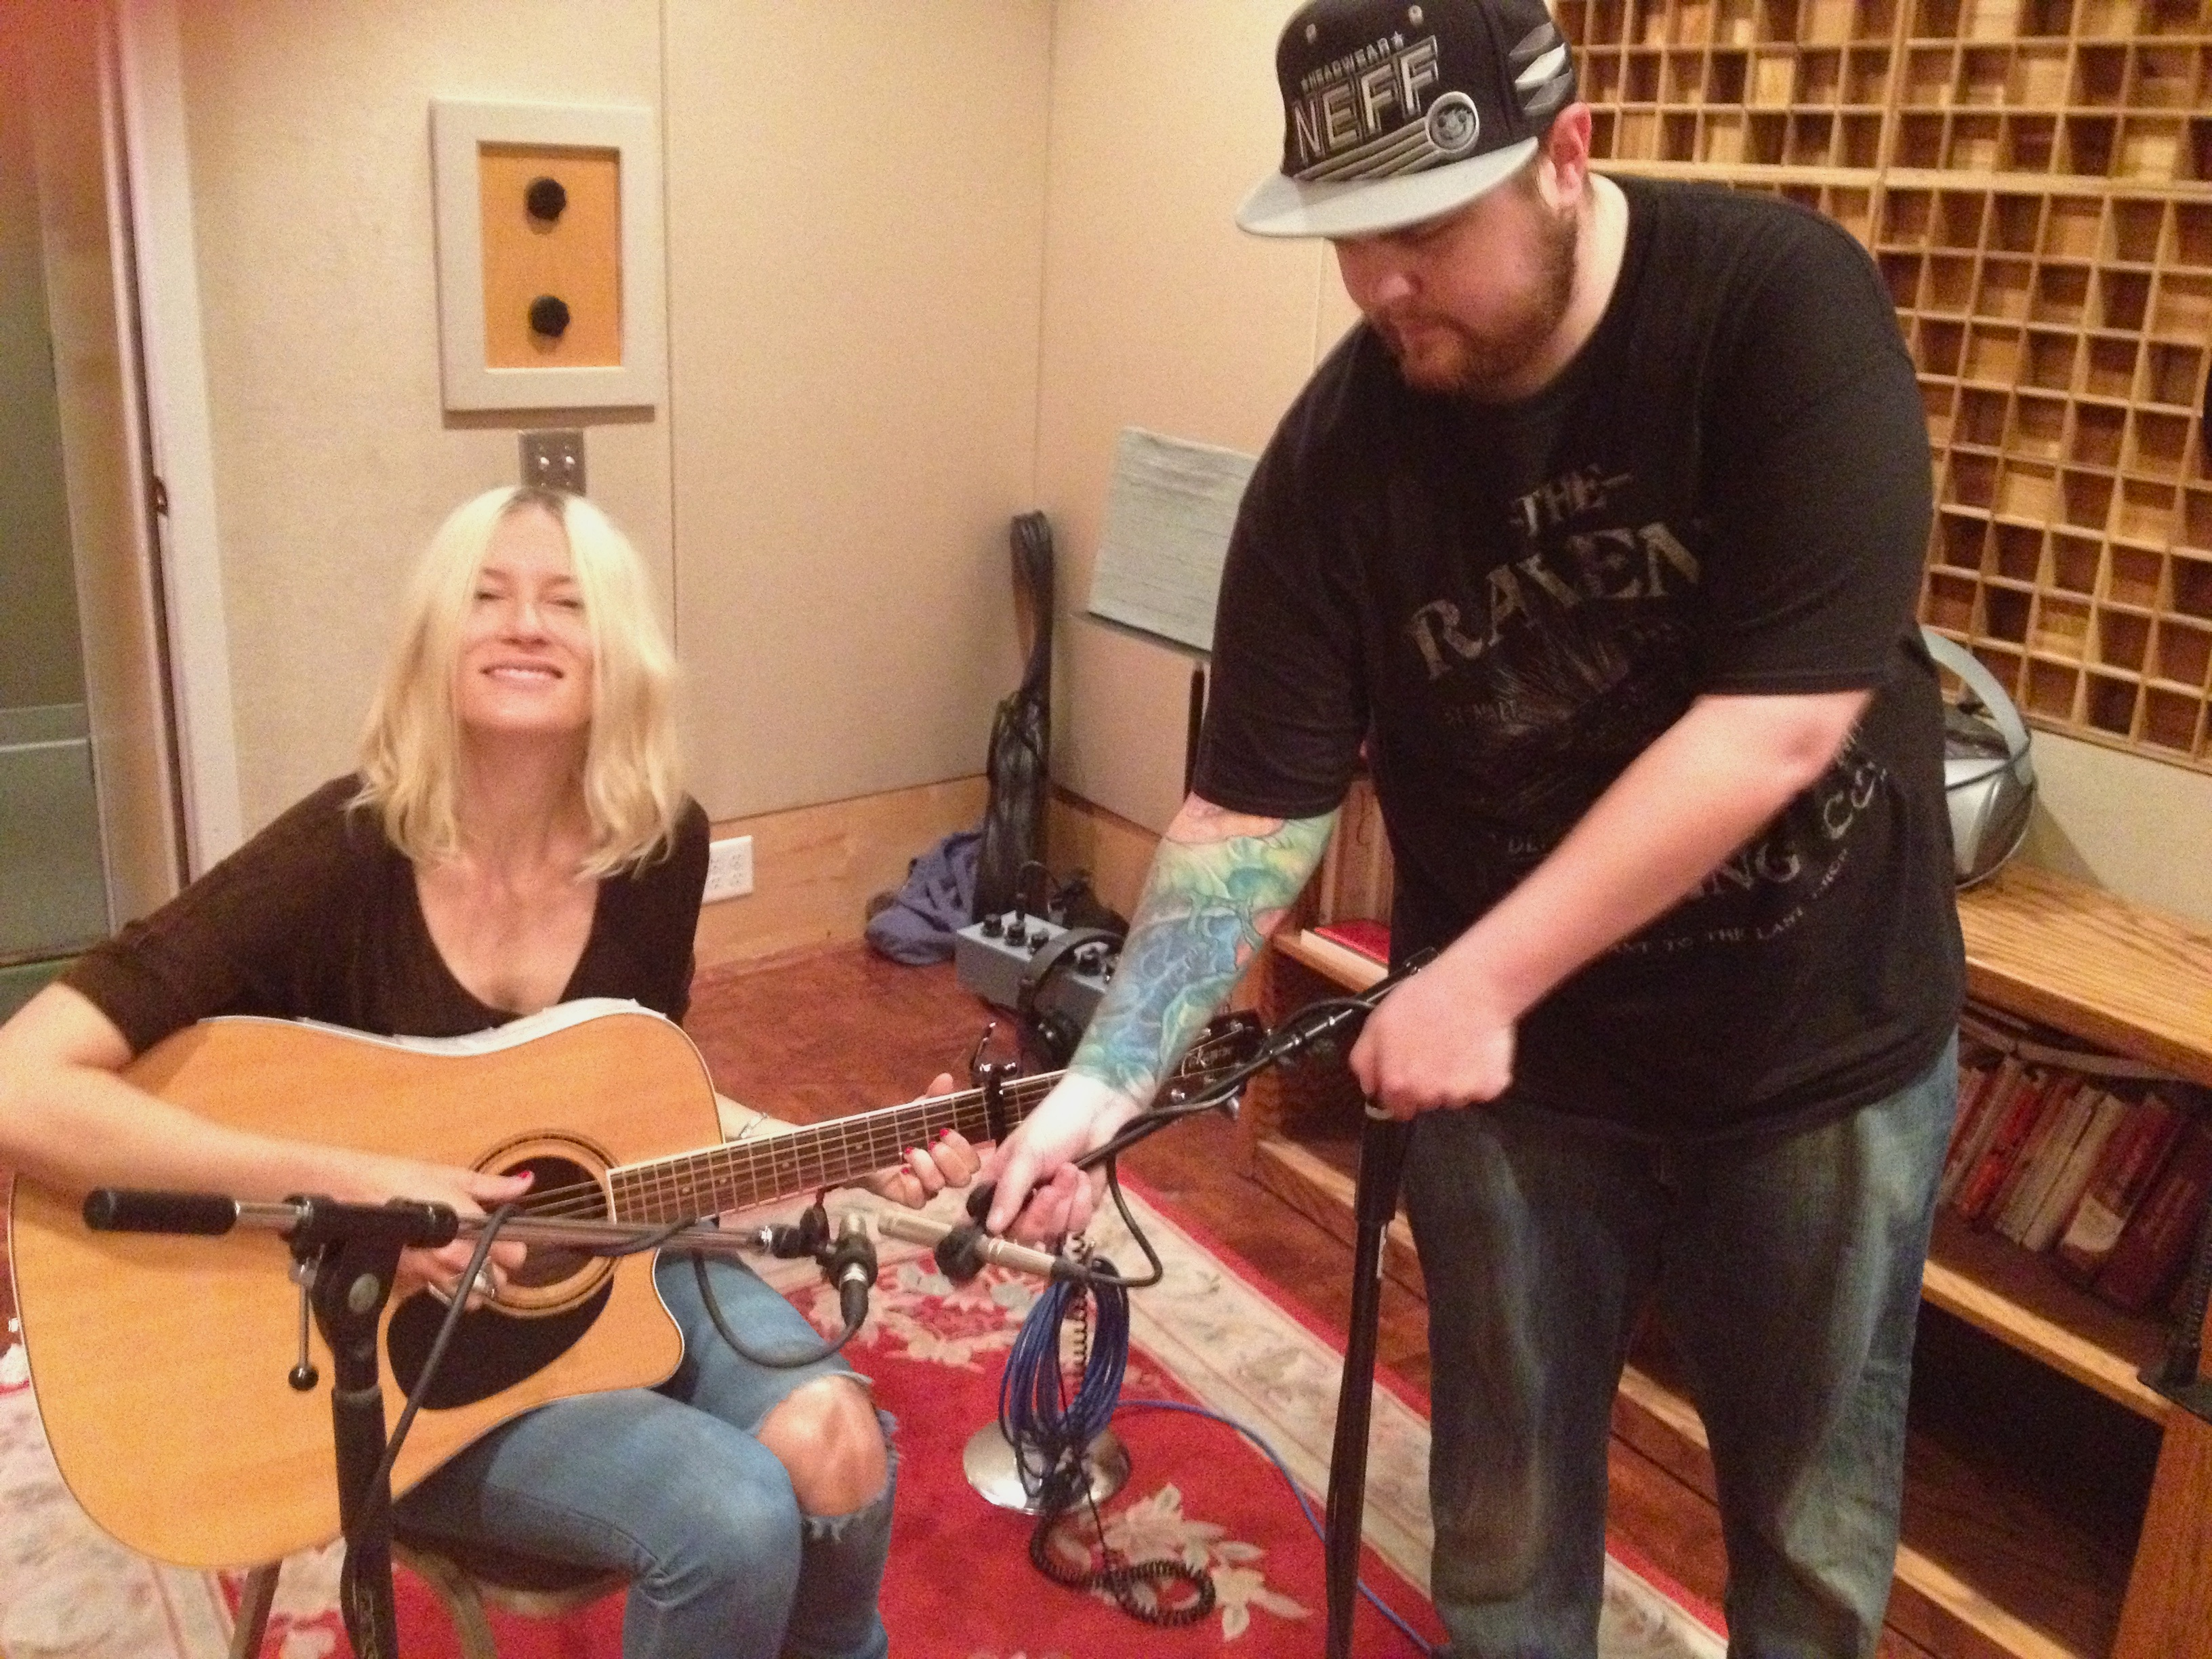 Engineer Kris Hoffman setting up for tracking Artist/Songwriter Molly Jenson for Quirky Pop disc